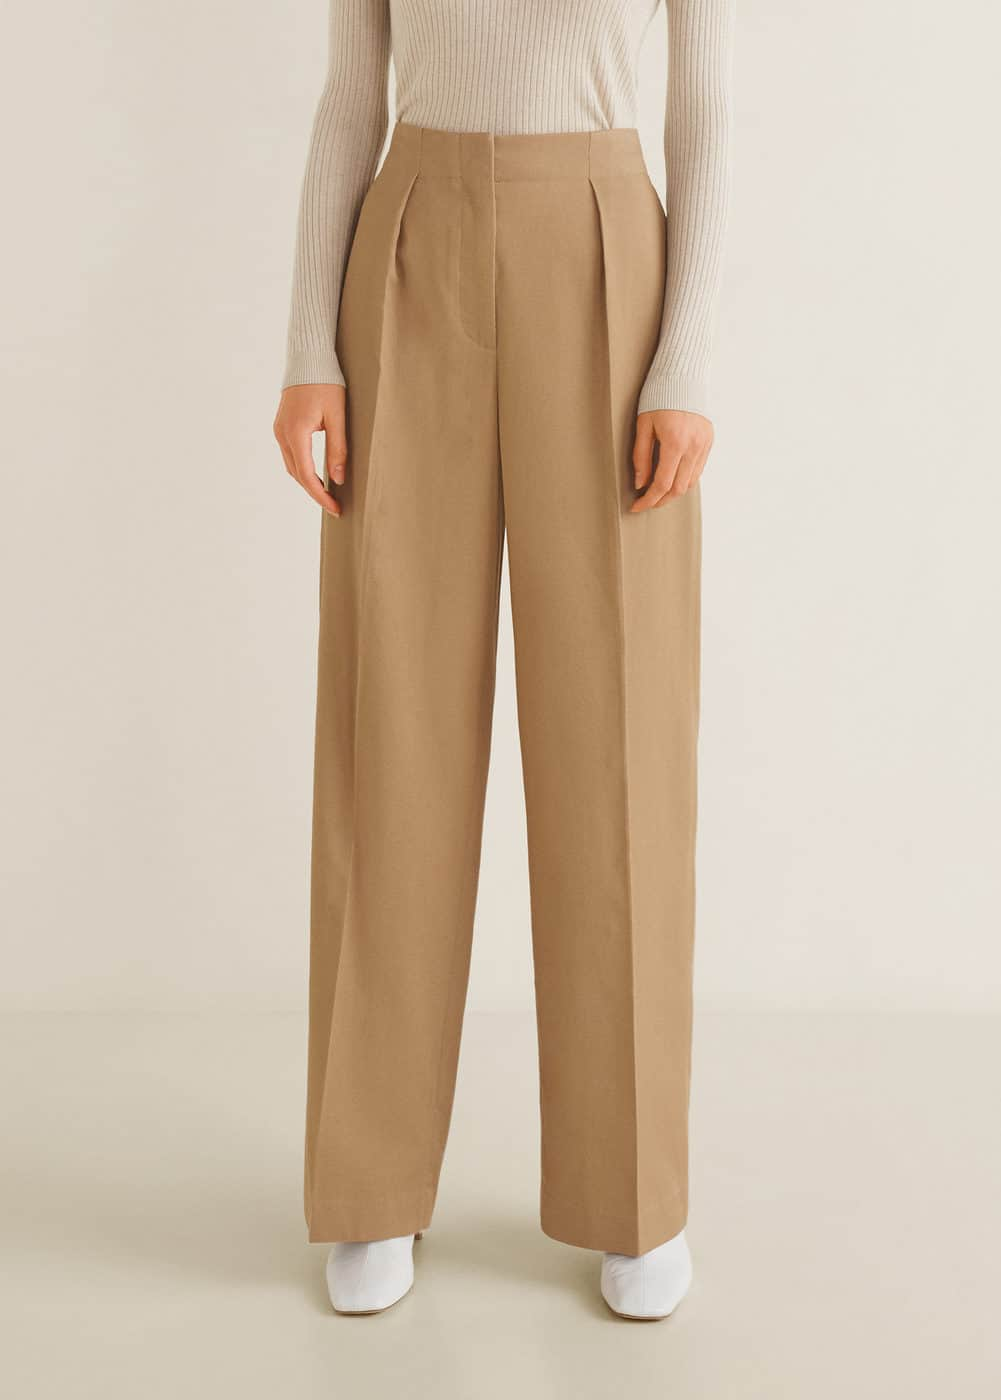 Pantalon Tissu Soft by Mango